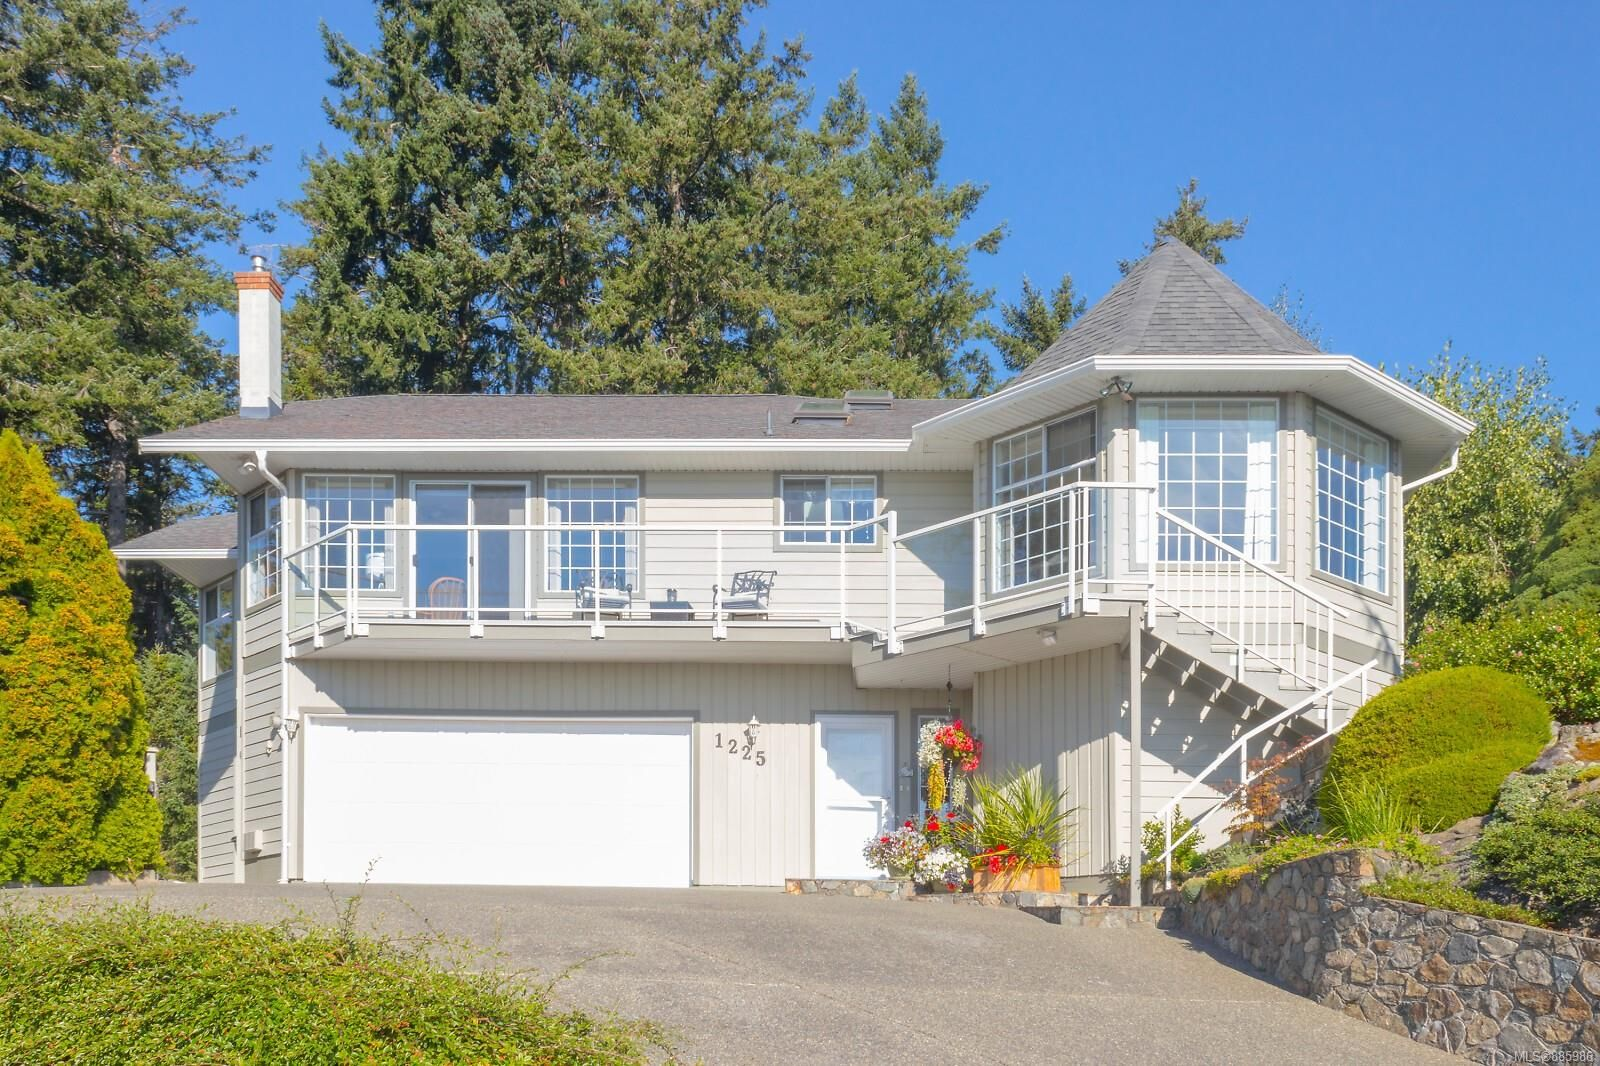 Main Photo: 1225 Tall Tree Pl in : SW Strawberry Vale House for sale (Saanich West)  : MLS®# 885986